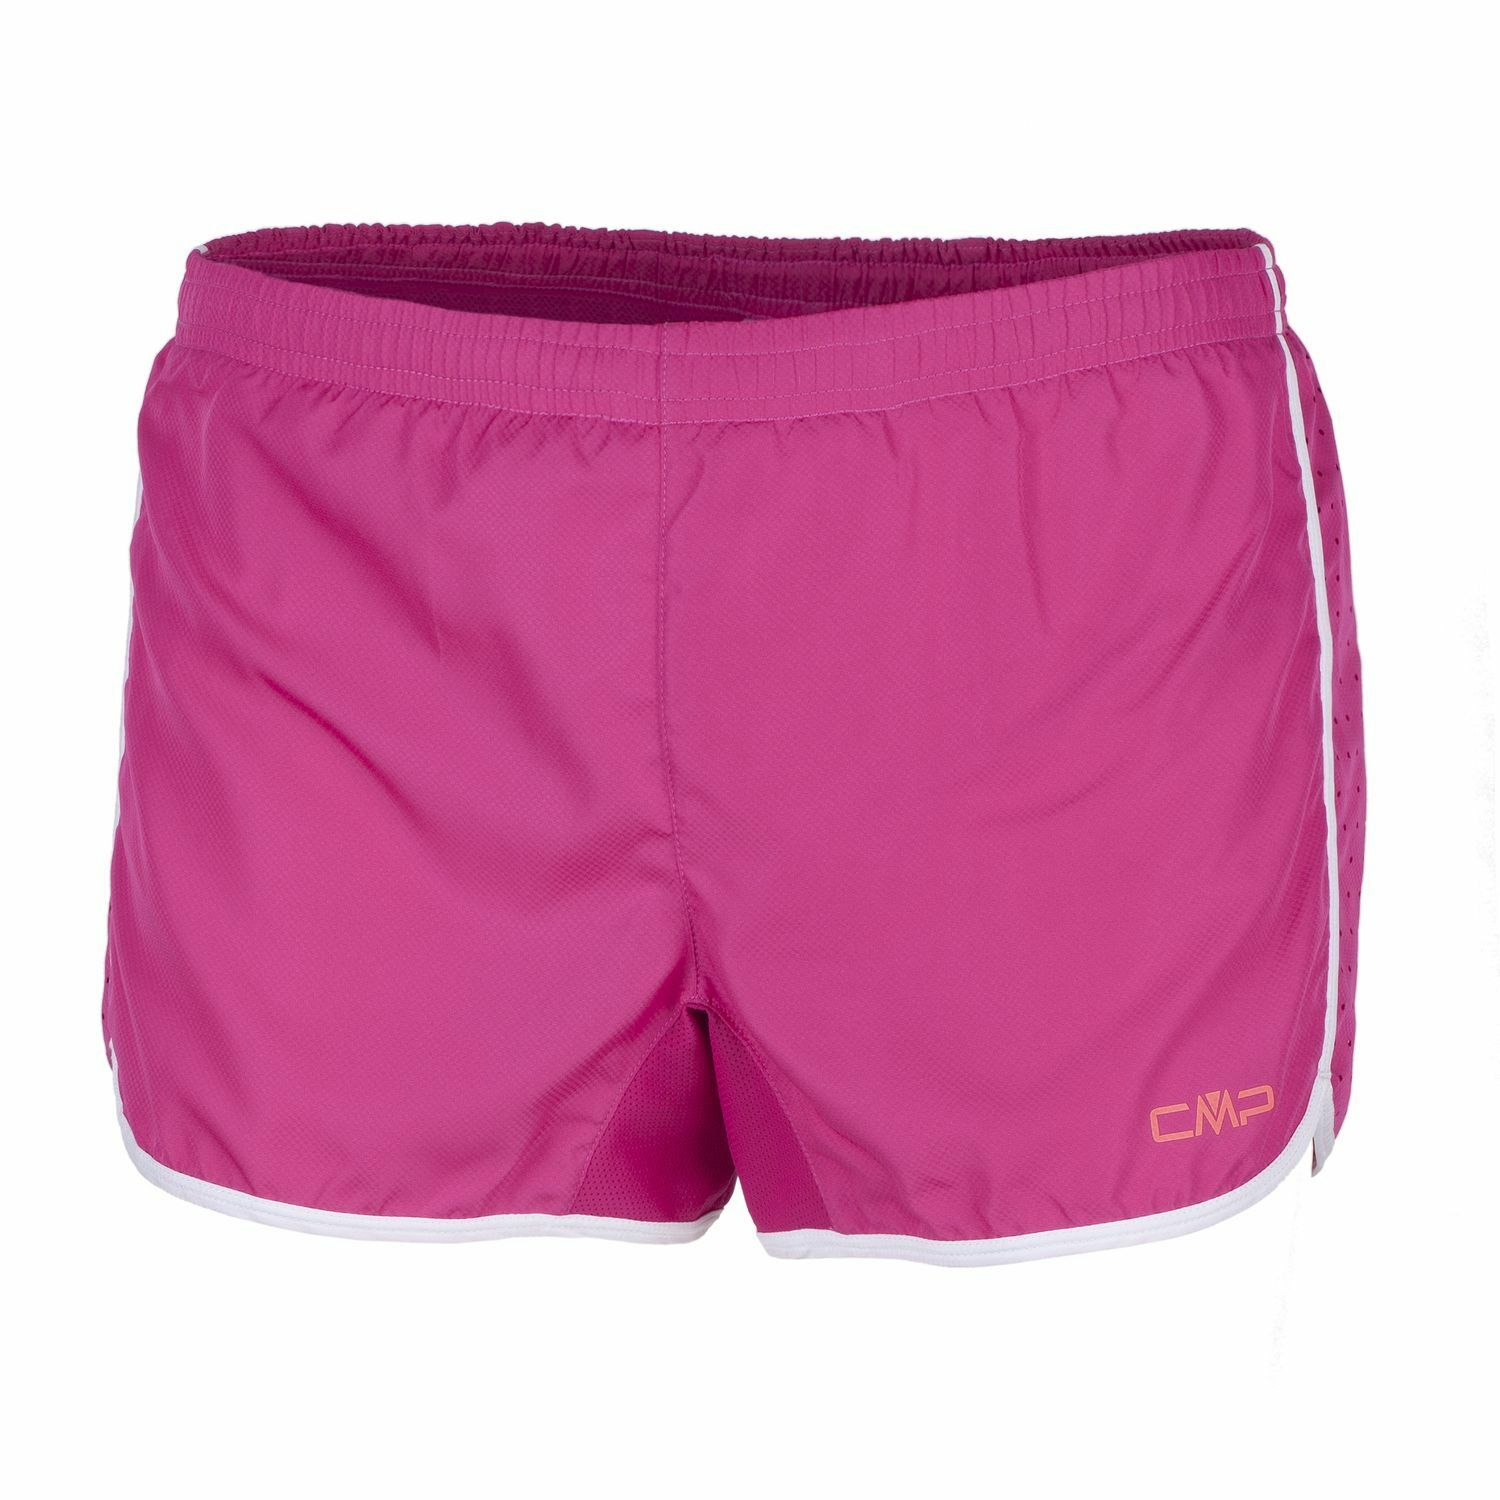 CMP Running Shorts  Functional Pants Running Pant Pink Mesh Stretch Dryfunction  wholesale store